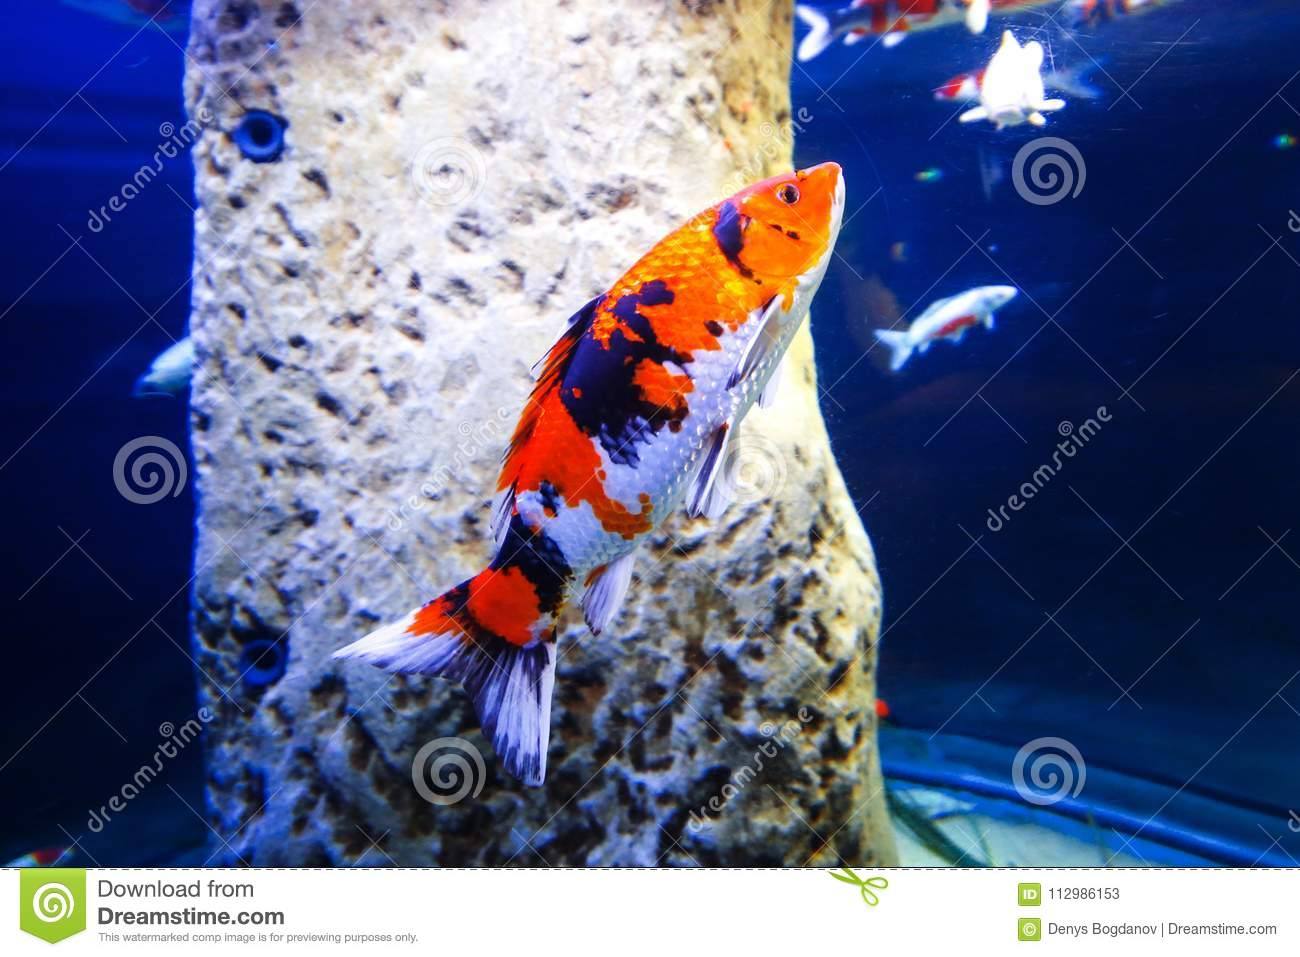 A beautiful colorful fish in an aquarium